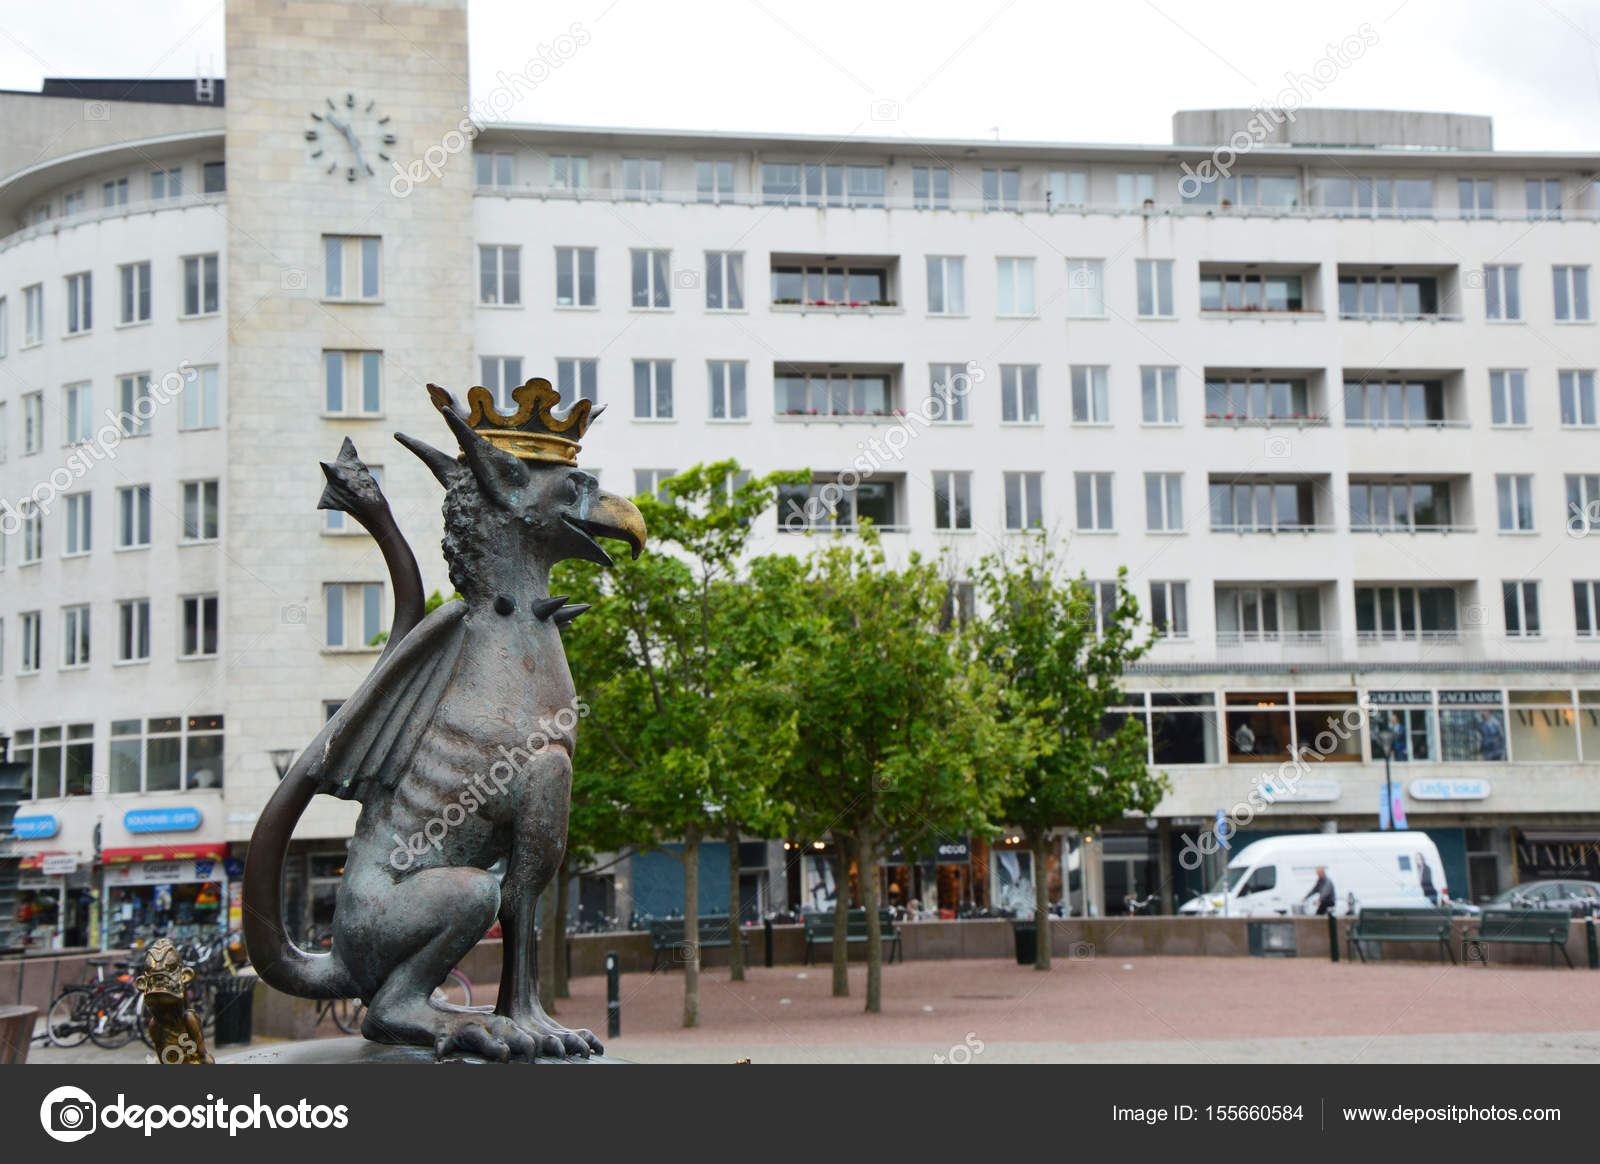 3a0173ff15d2 MALMO, SWEDEN - MAY 31, 2107: Gryphon in the center of Malmo in Gustav  Adolfs Torg square with trees and a great white building with clock on the  background ...